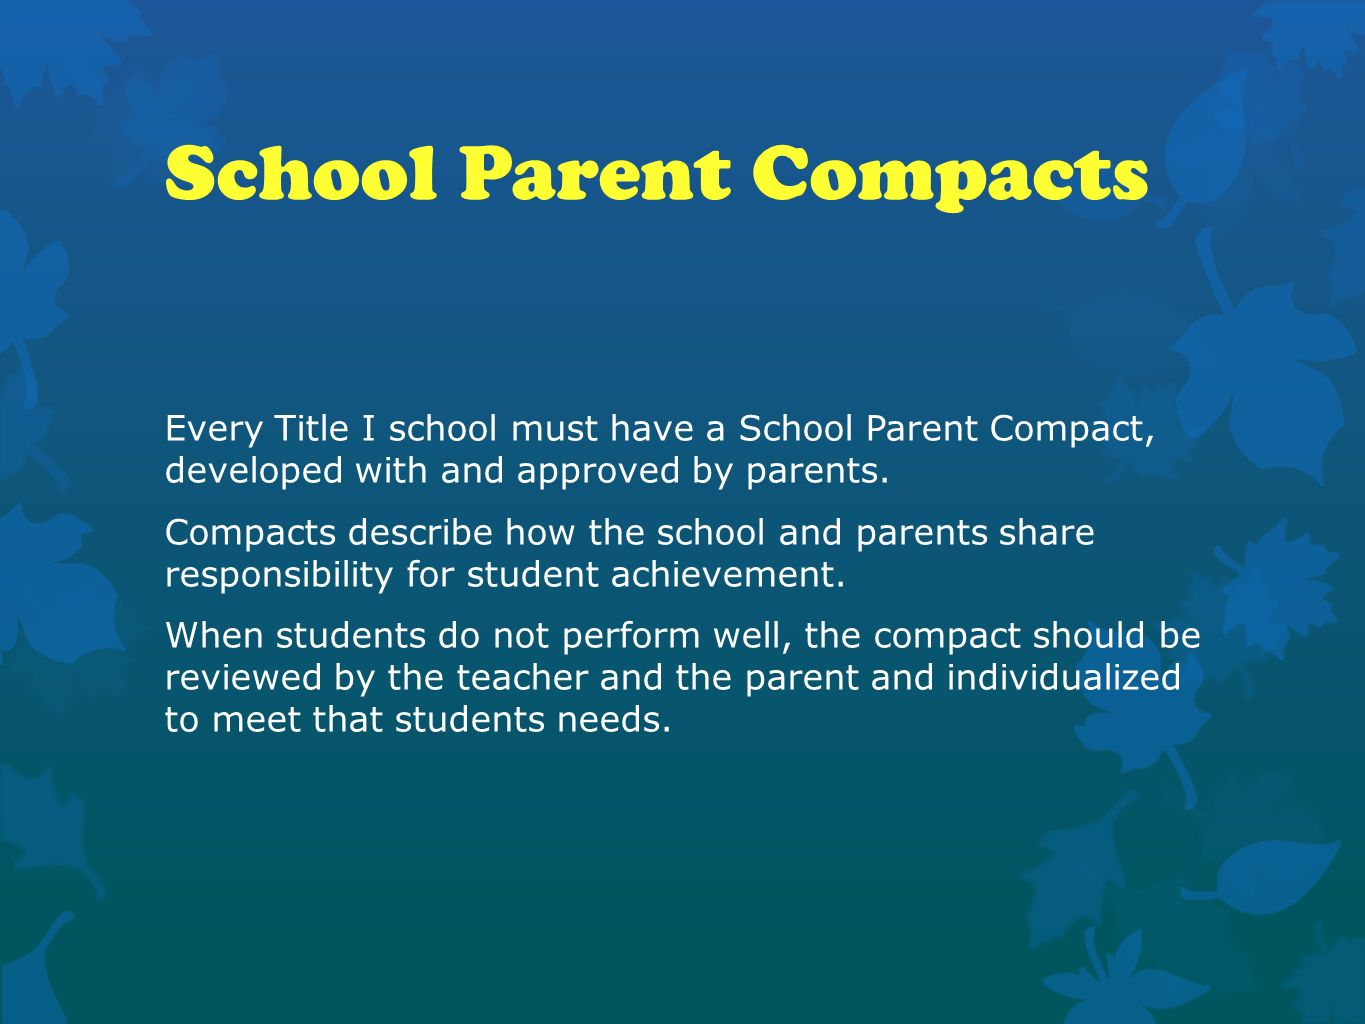 School Parent Compacts